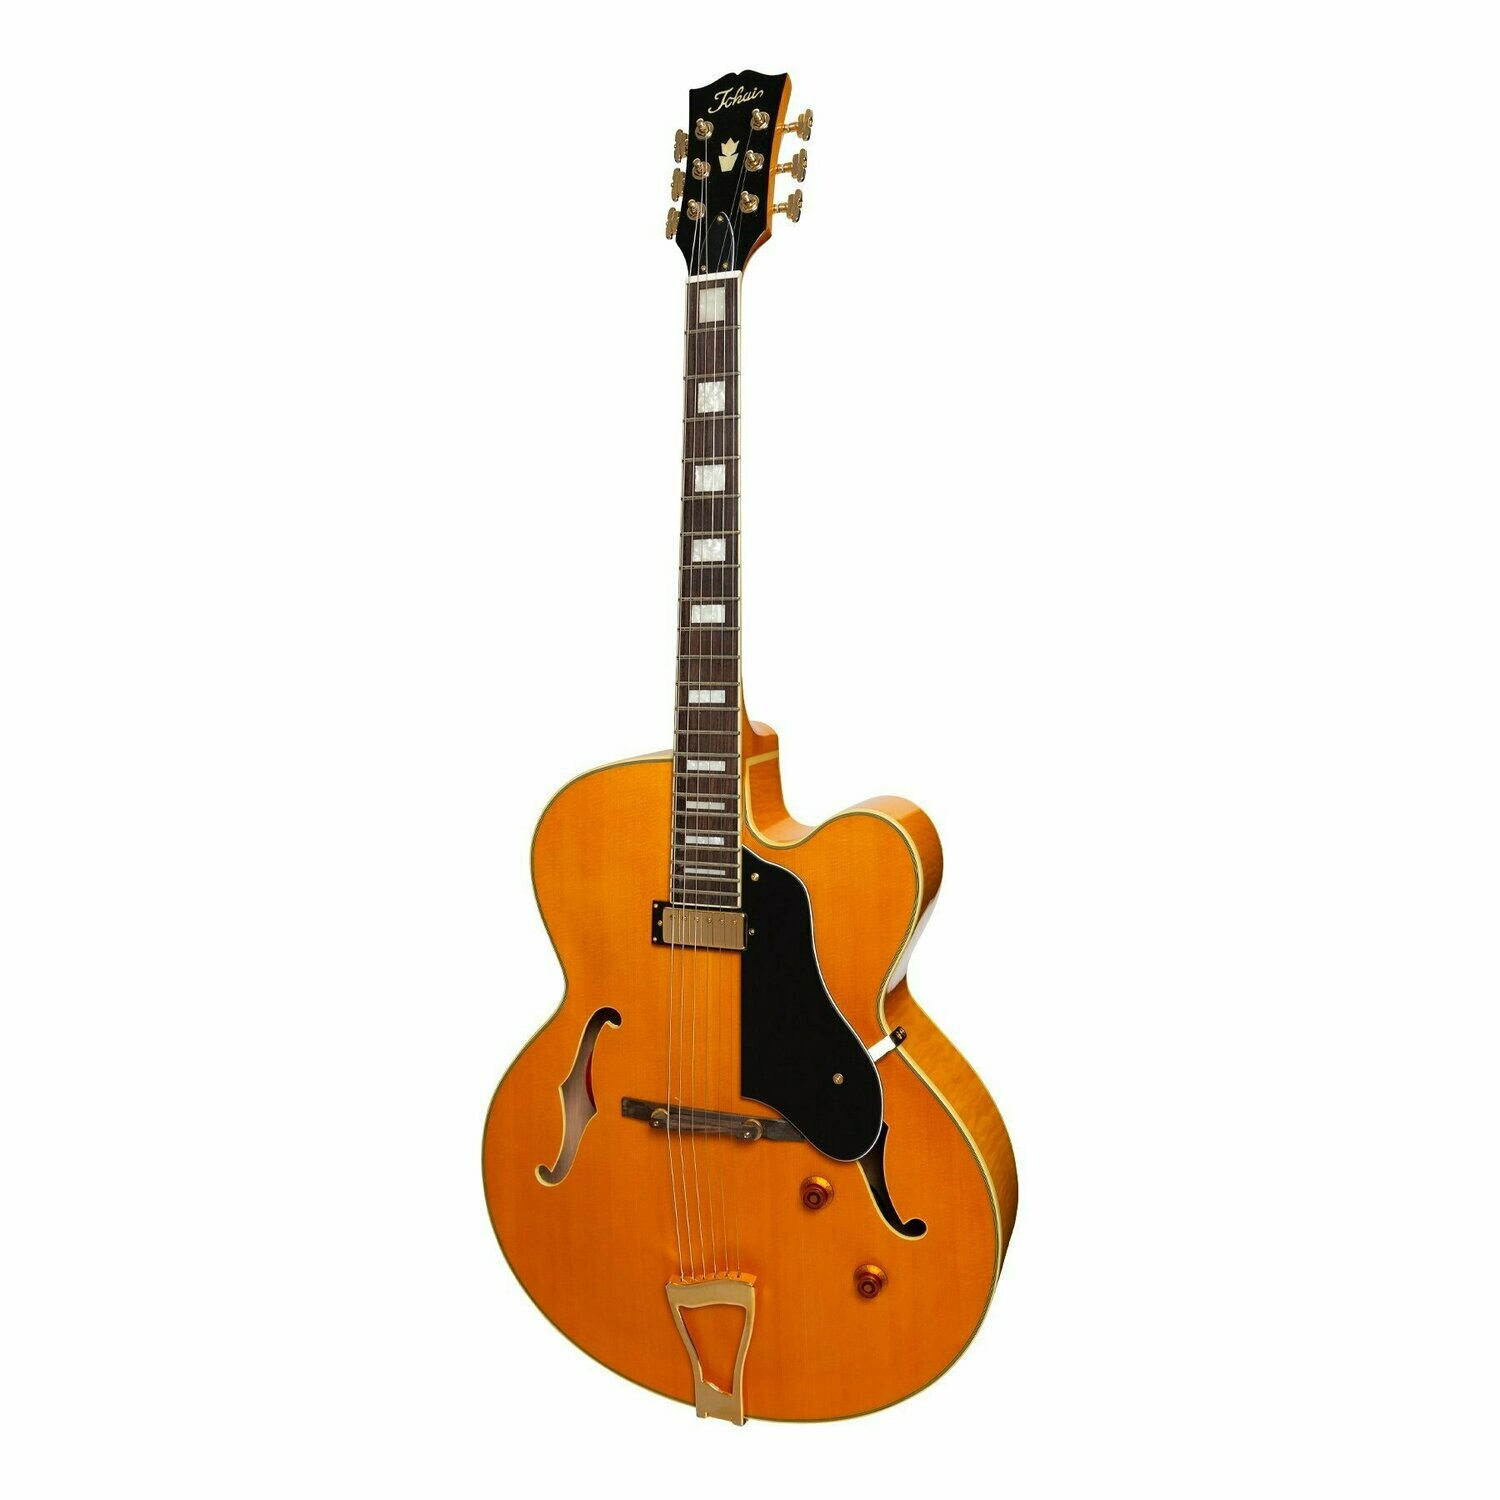 Tokai 'Traditional Series' JS-70 Jazz Hollow Body Archtop Electric Guitar (Vintage Natural)